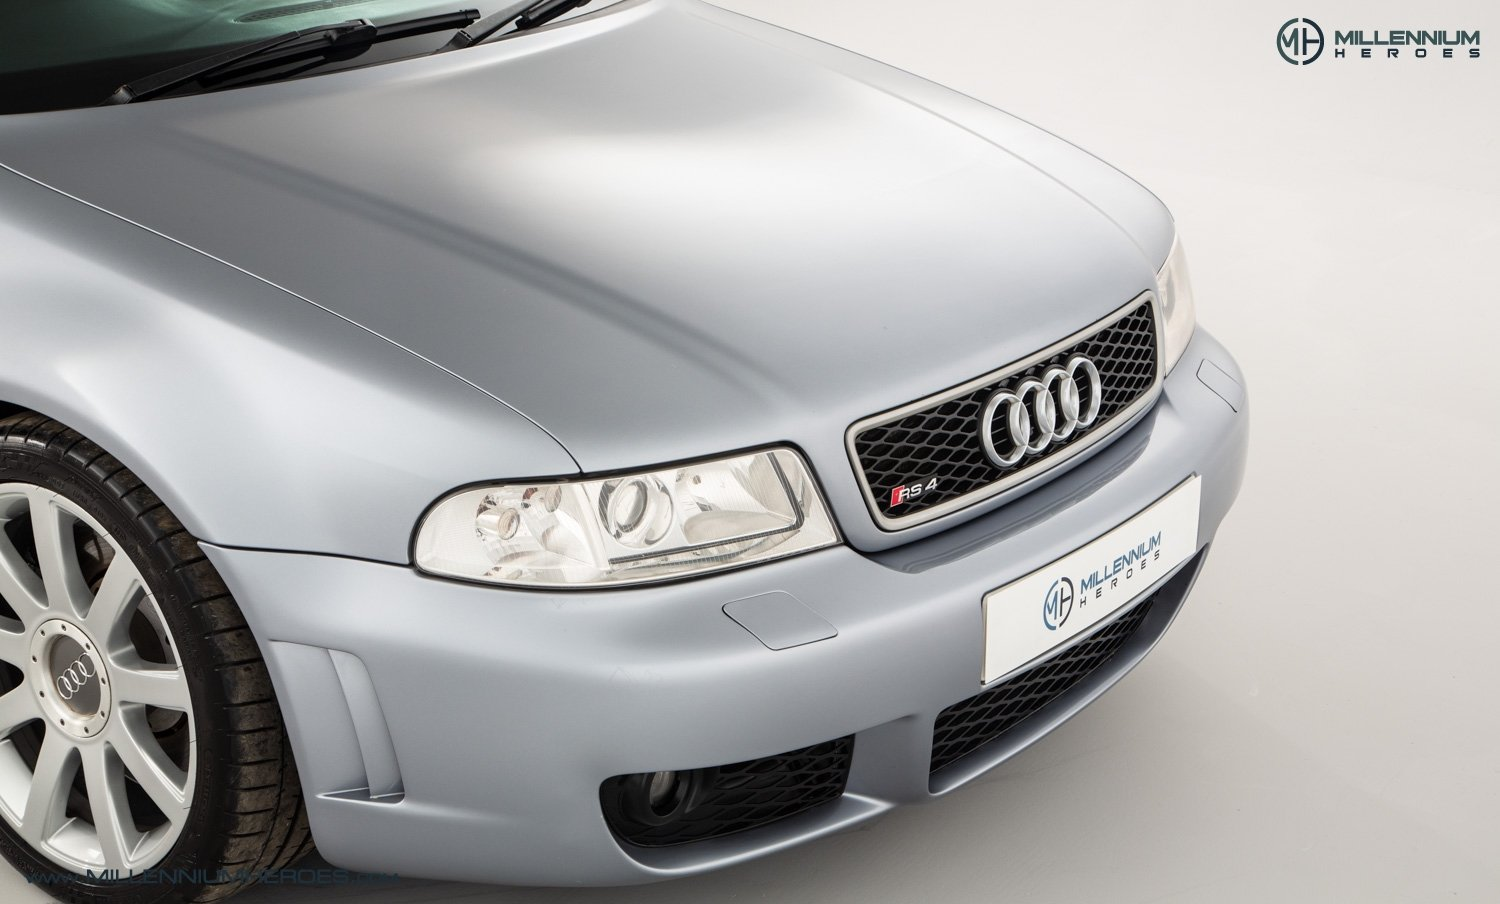 2001 AUDI B5 RS4 AVANT // 95K MILES // AVUS SILVER For Sale (picture 5 of 28)